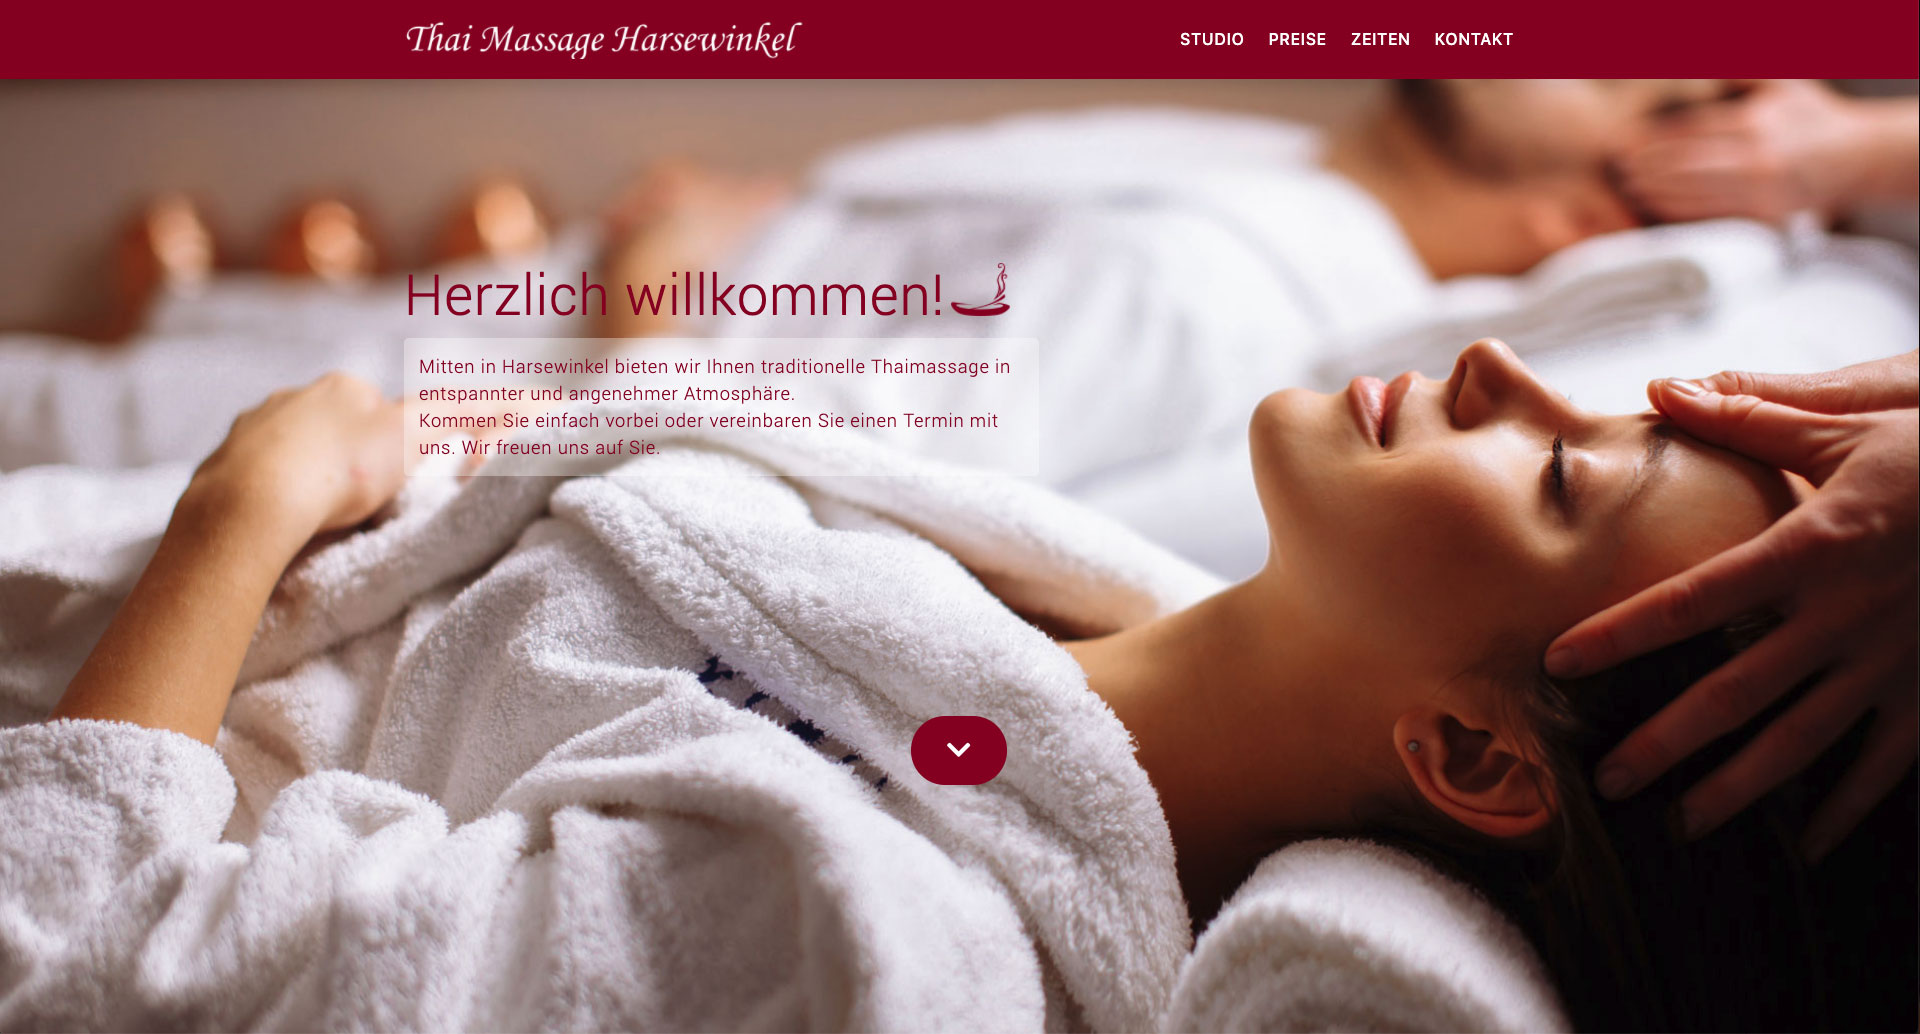 Thaimassage Harsewinkel